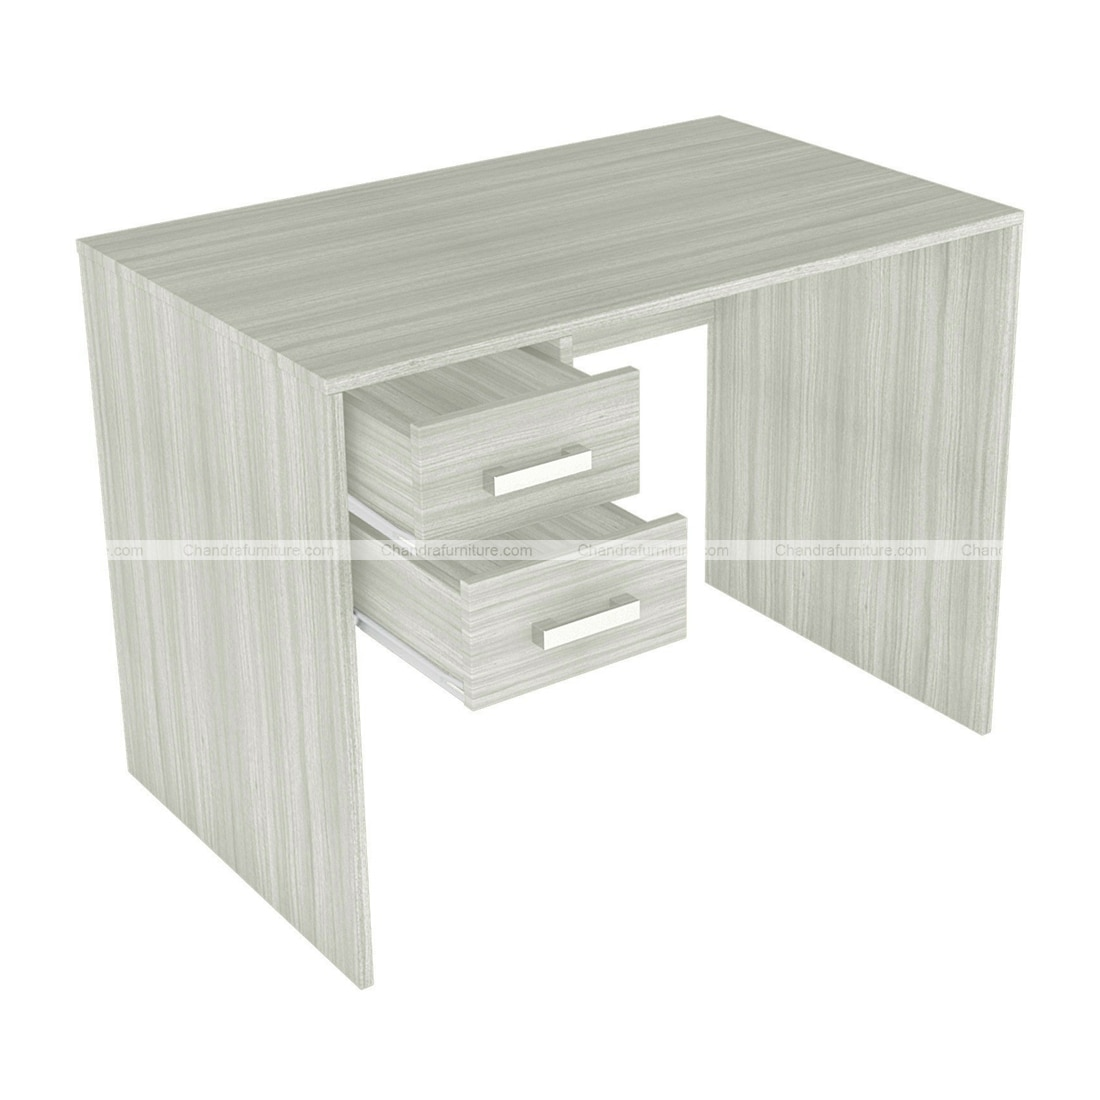 Chandra Furniture Yumi Study Desk With Drawers In White Finish